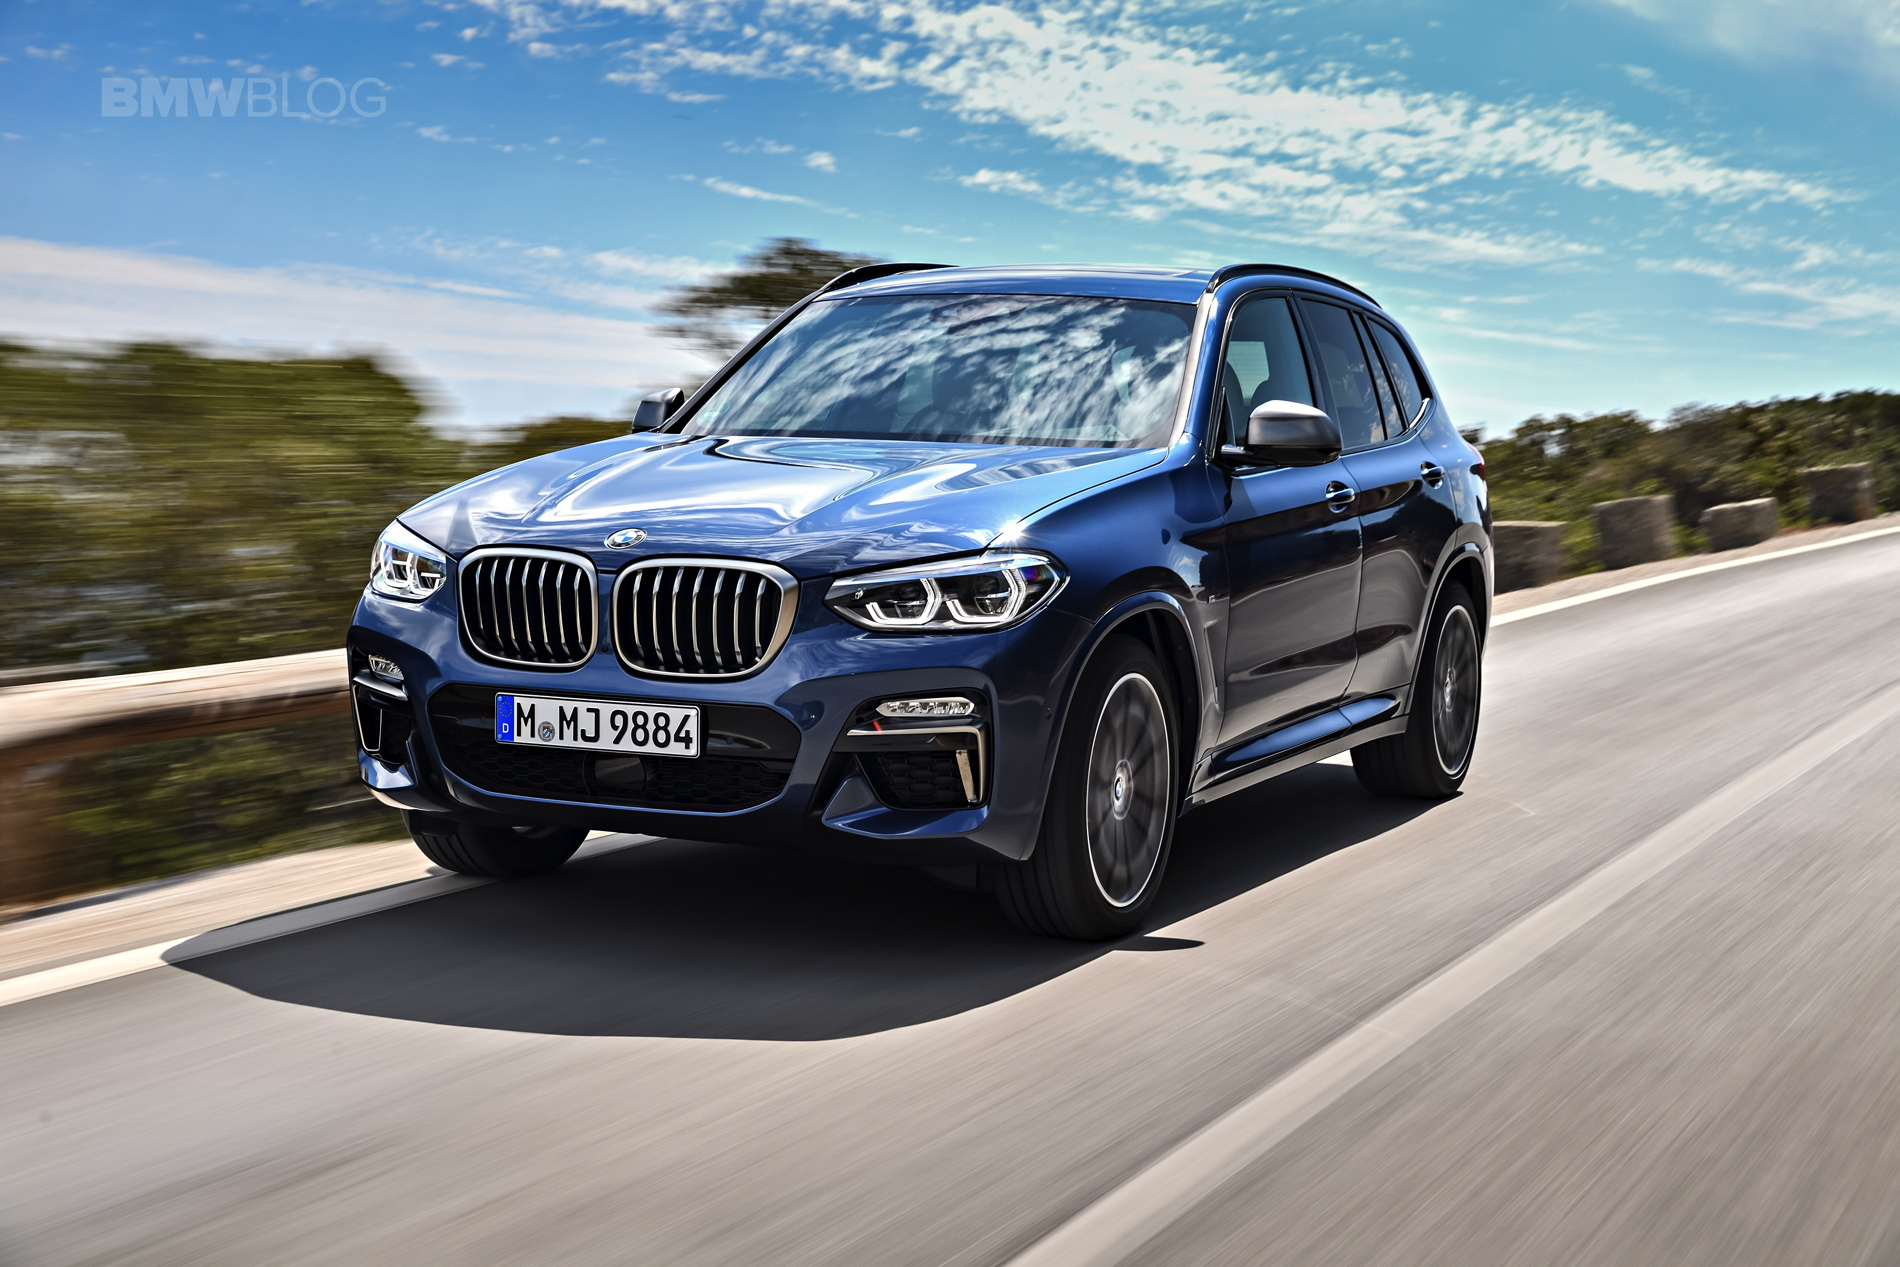 2018 BMW X3 M40i photoshoot 90